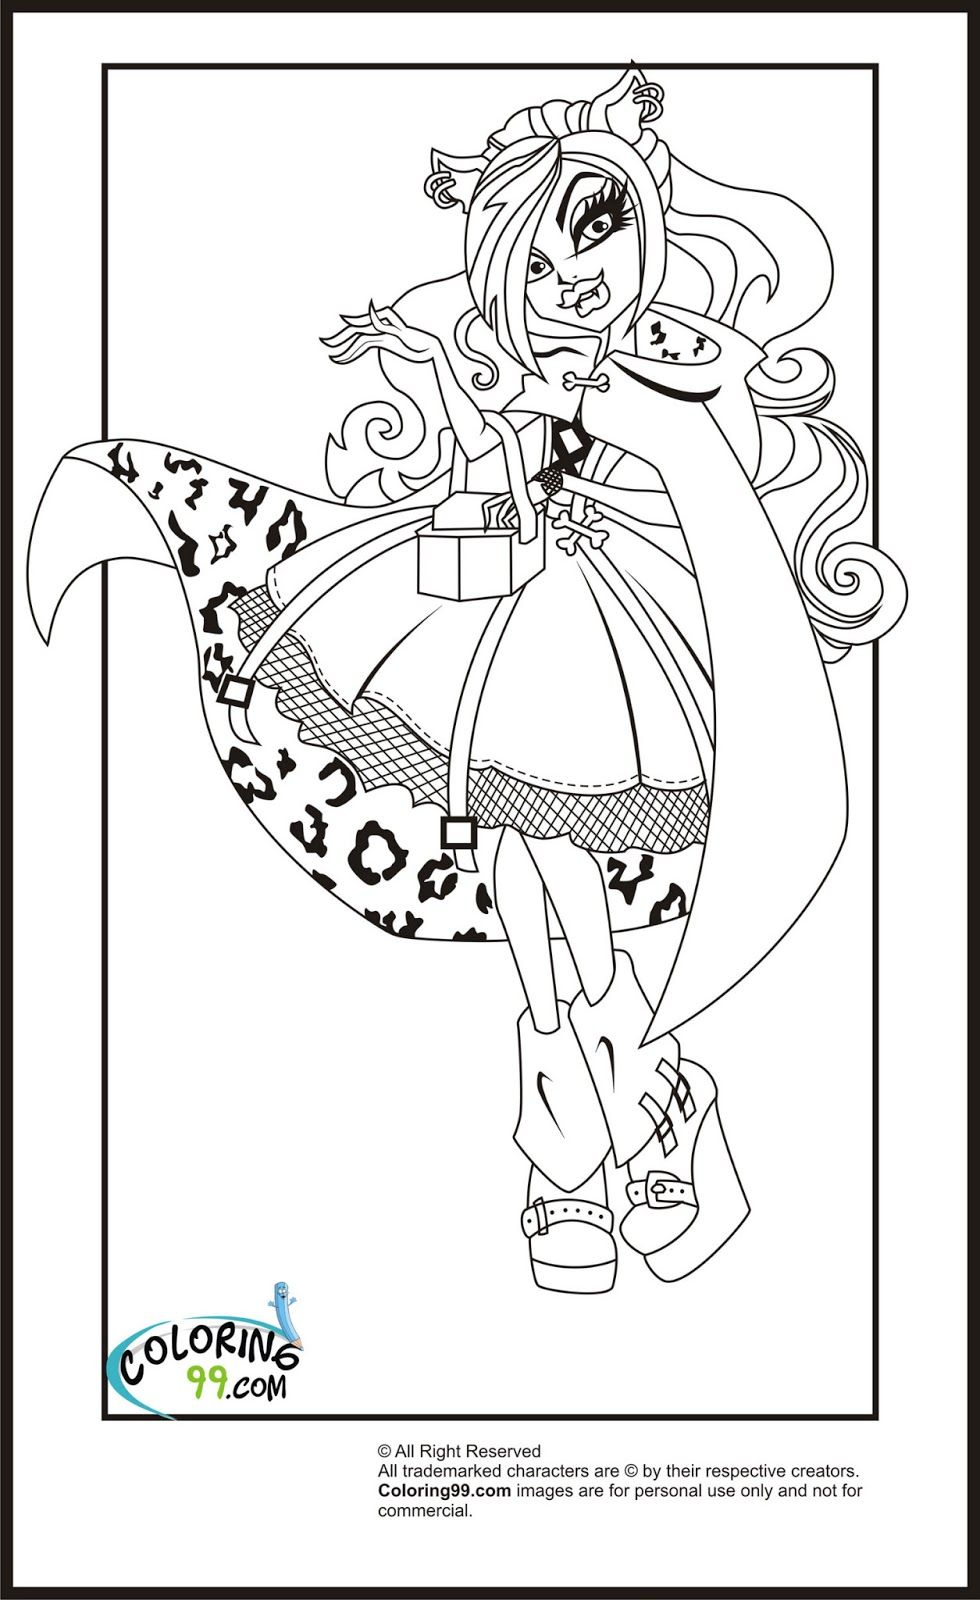 Monster High Clawdeen Wolf Coloring Pages | Team colors | Monster ...